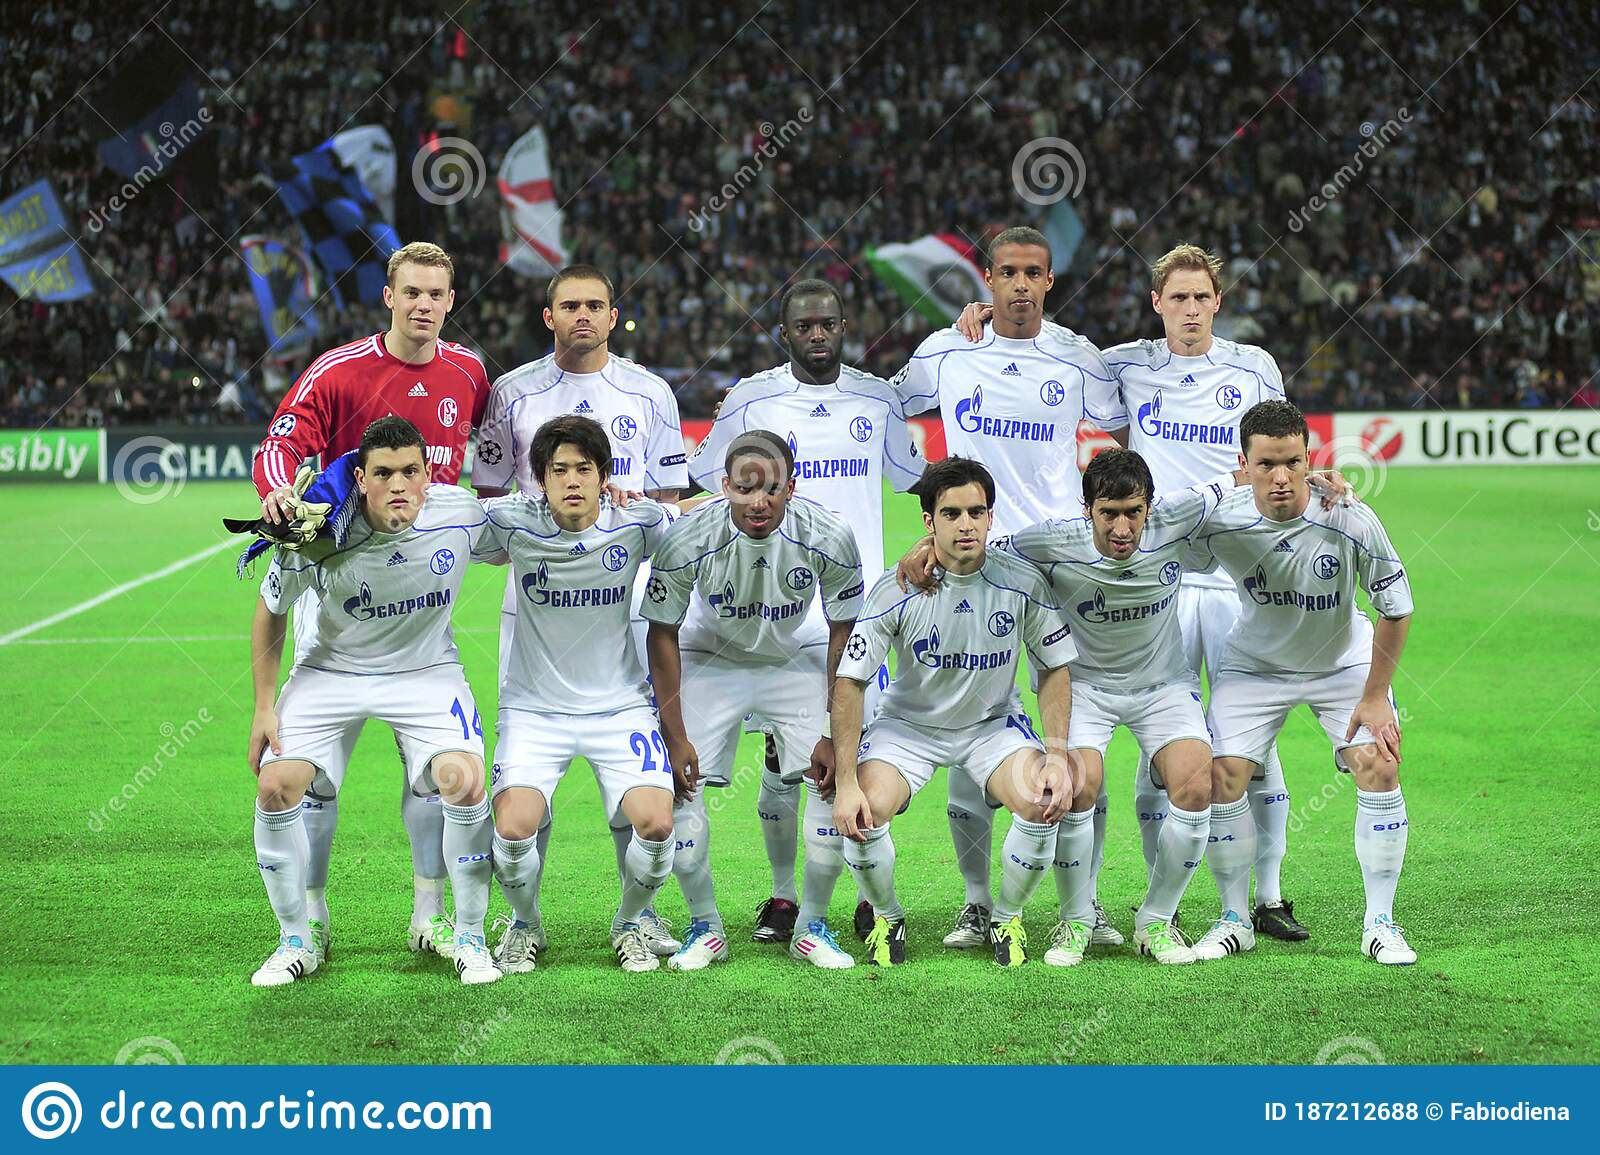 The Players Of The Schalke 04 Before The Match Editorial Stock ...